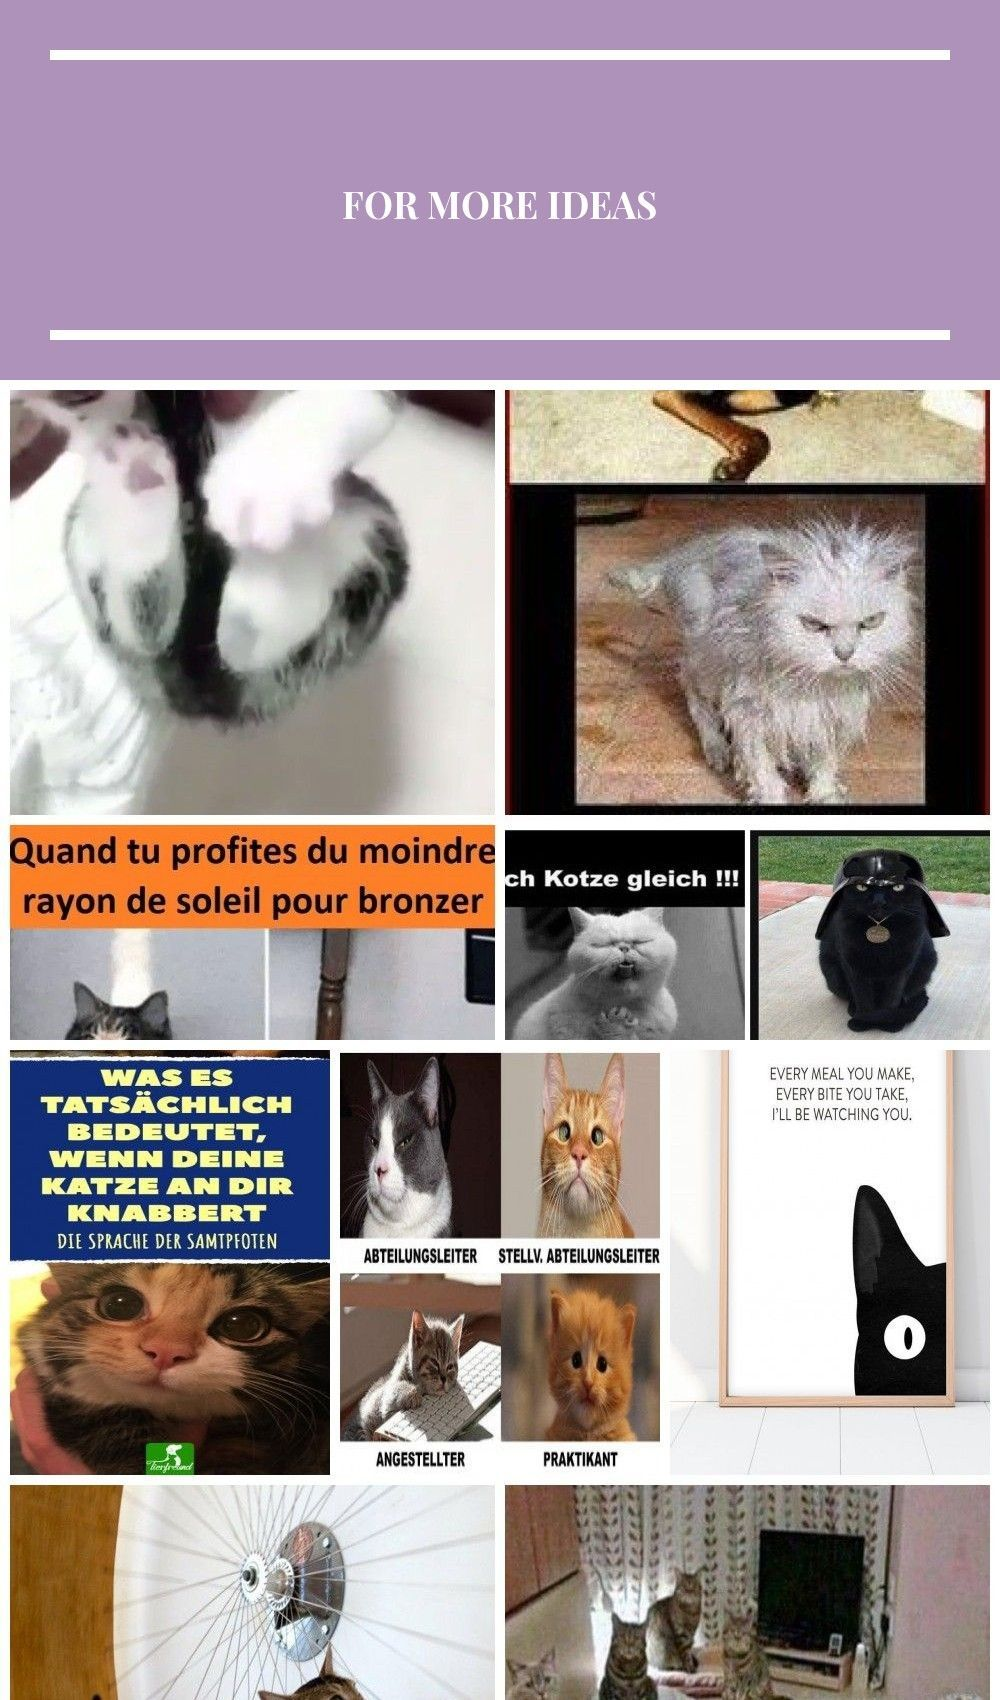 They Say That A Dog Is Man S Best Friend But Every Cat Owner Knows This Isn Cat Dog Friend Katzenwitzig Mans Owner Cat Owners Cat Facts Cat Lovers